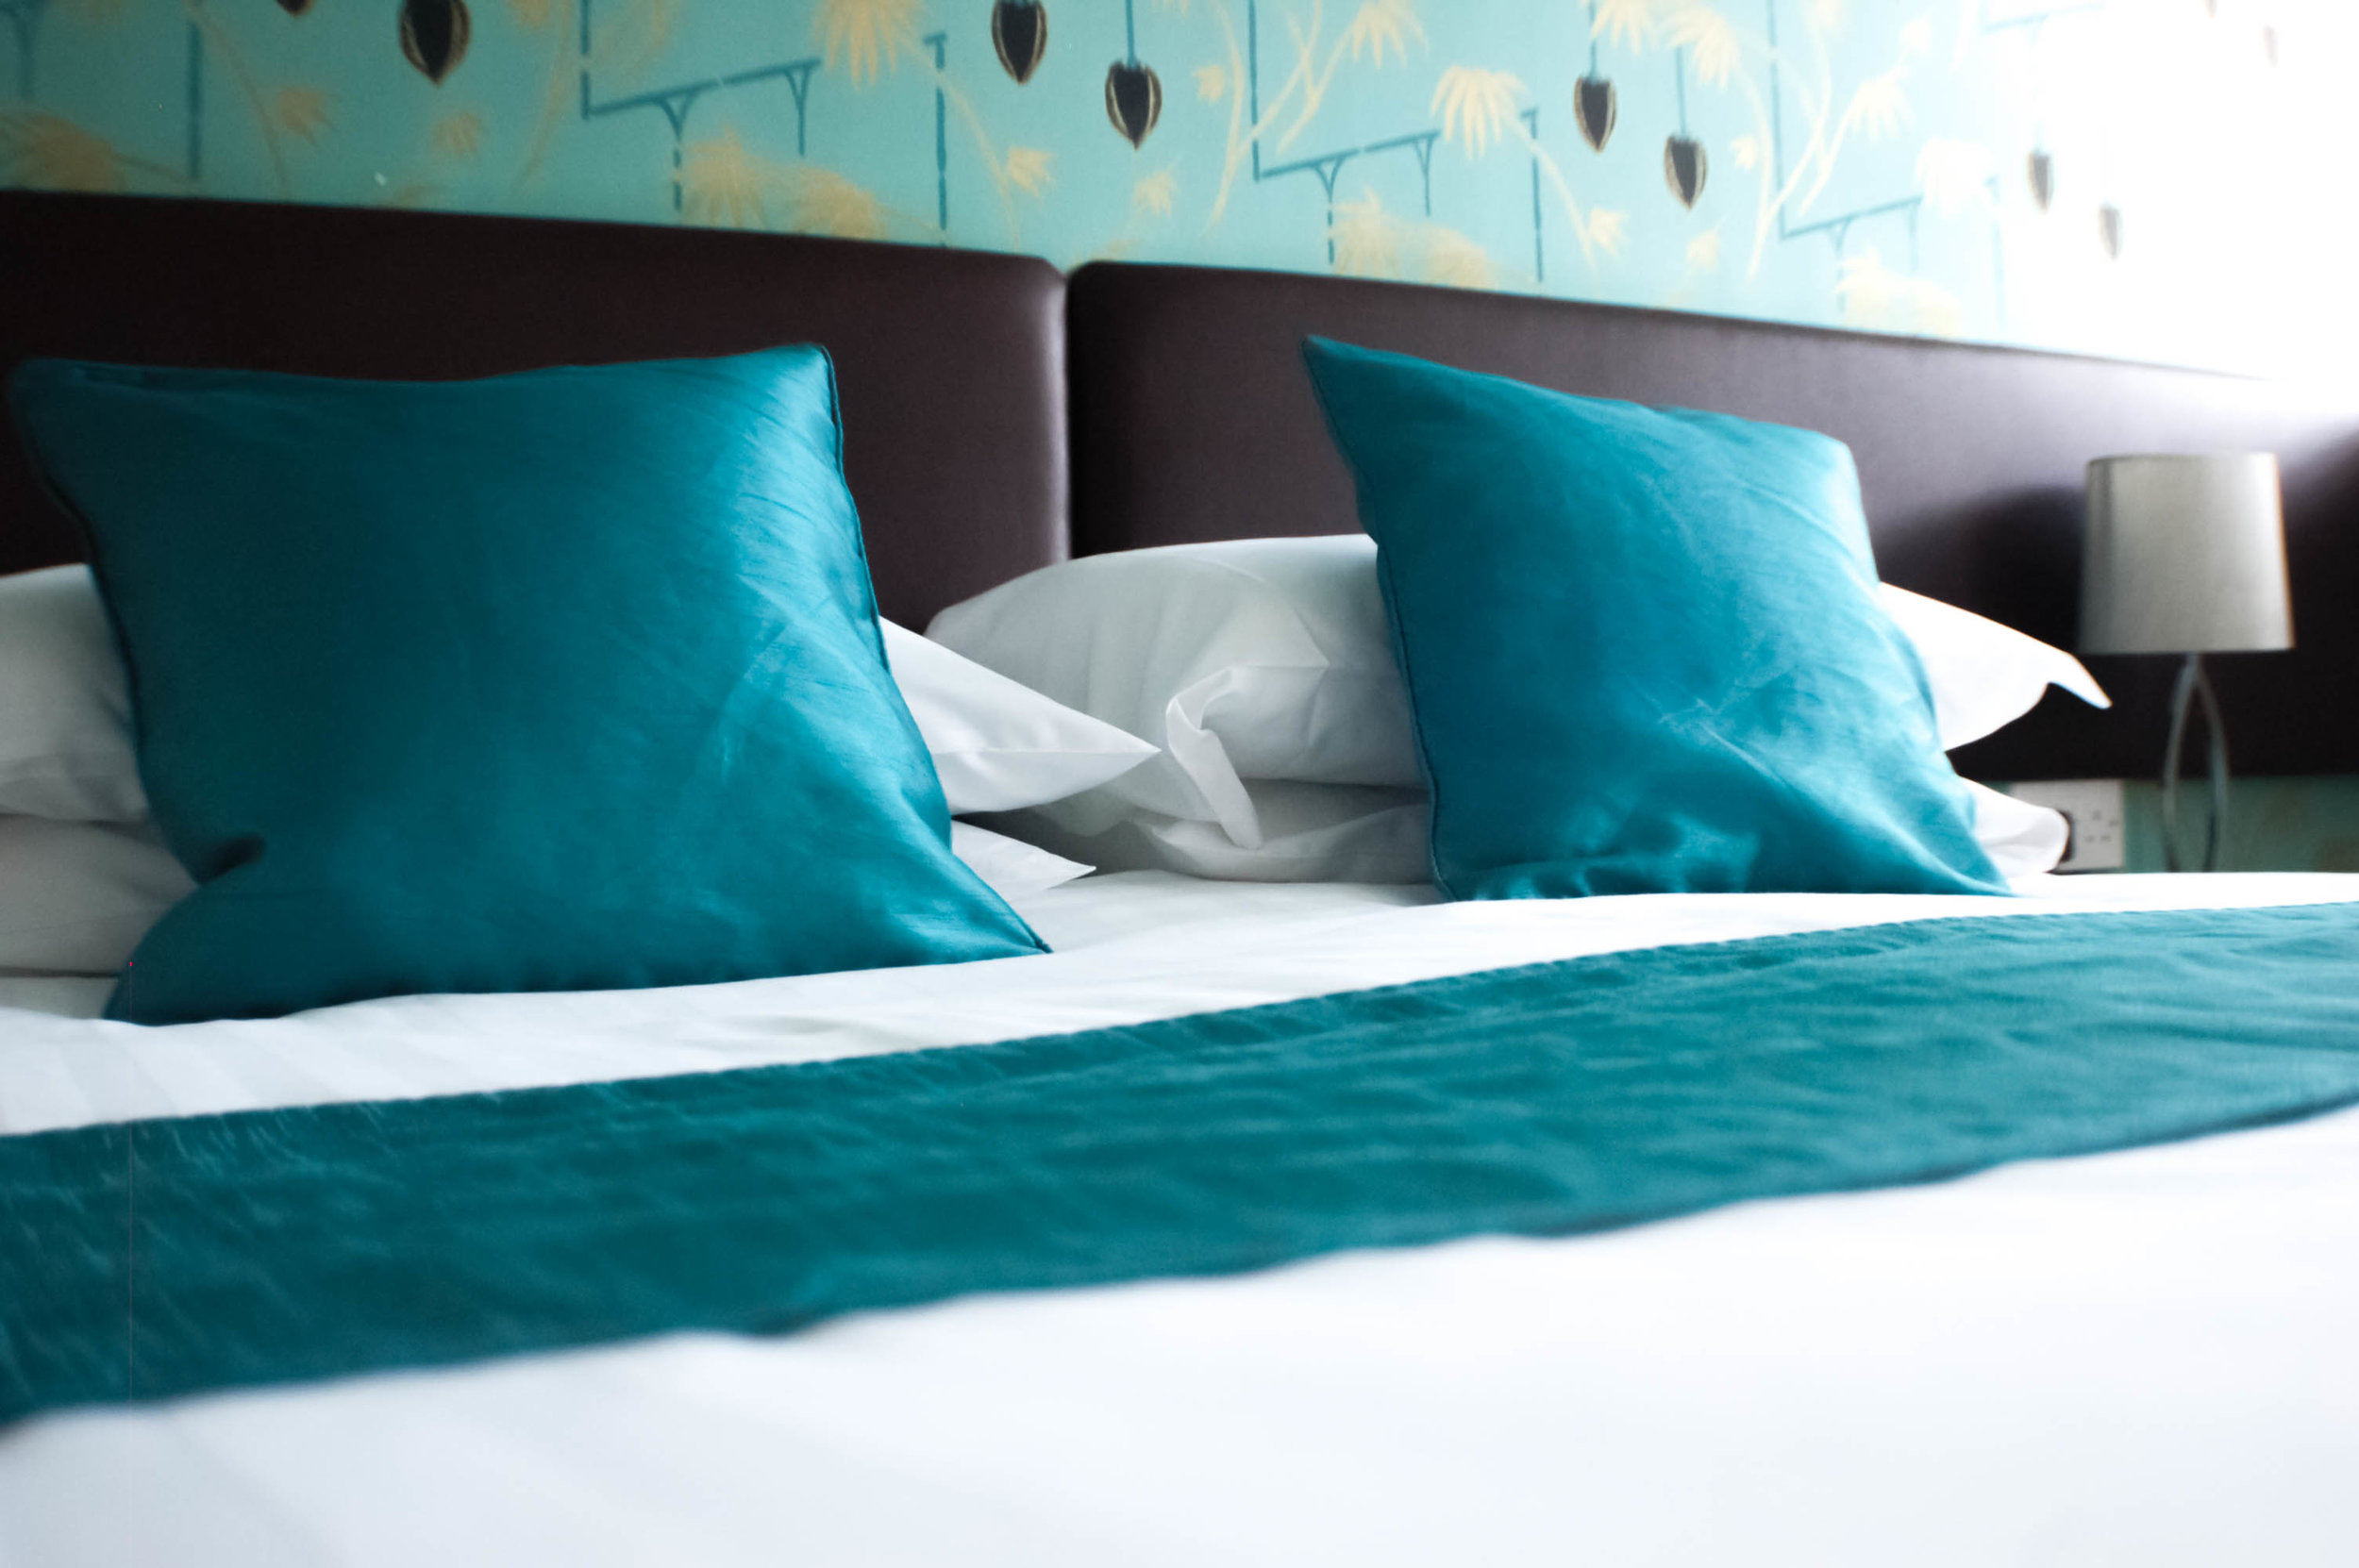 Book your accommodation - Get in touch today to book your accommodation